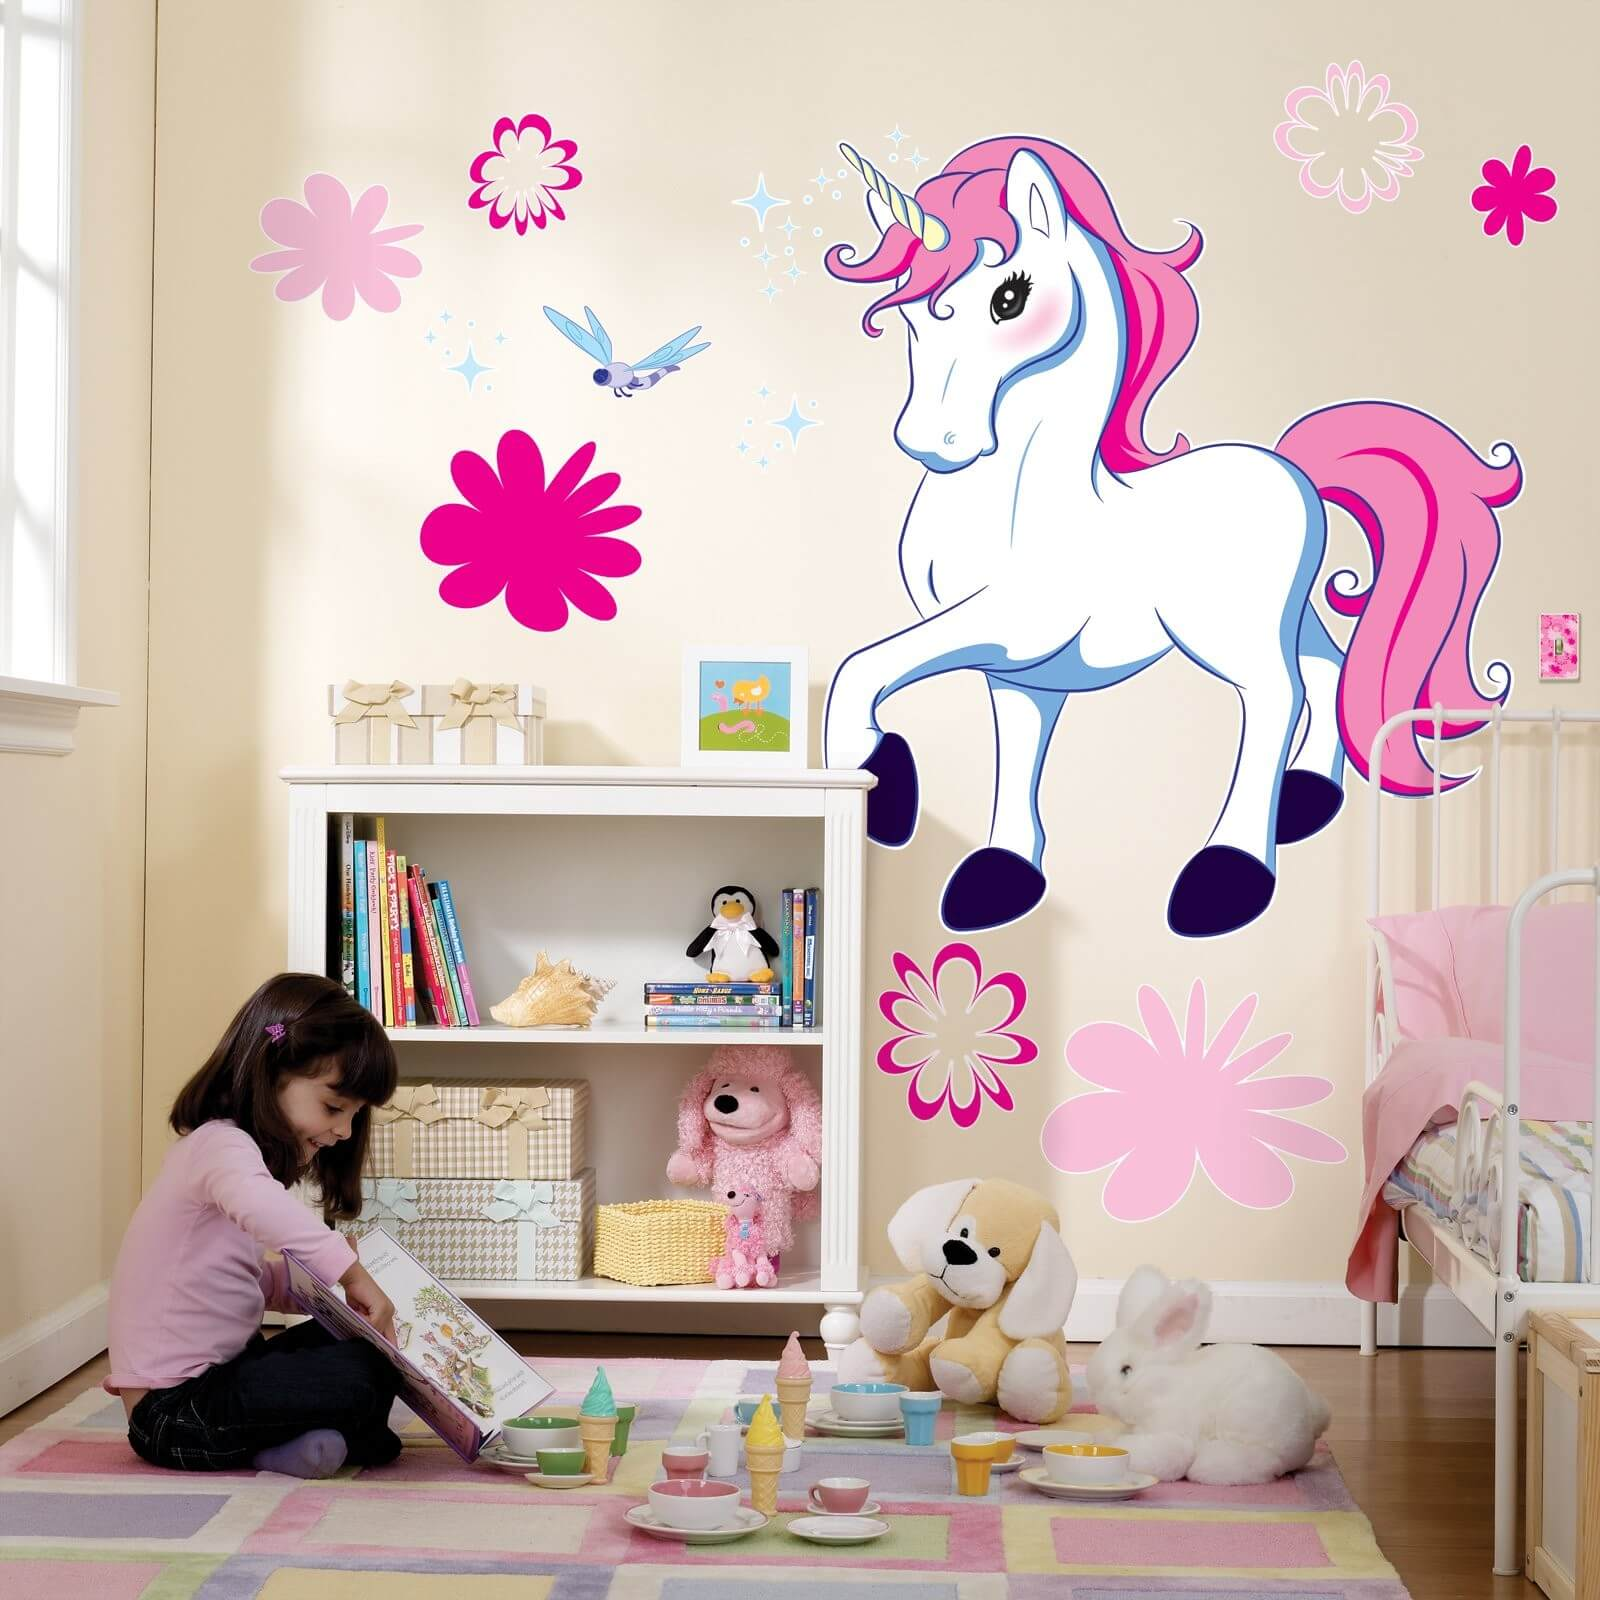 Adorable Unicorn Bedroom